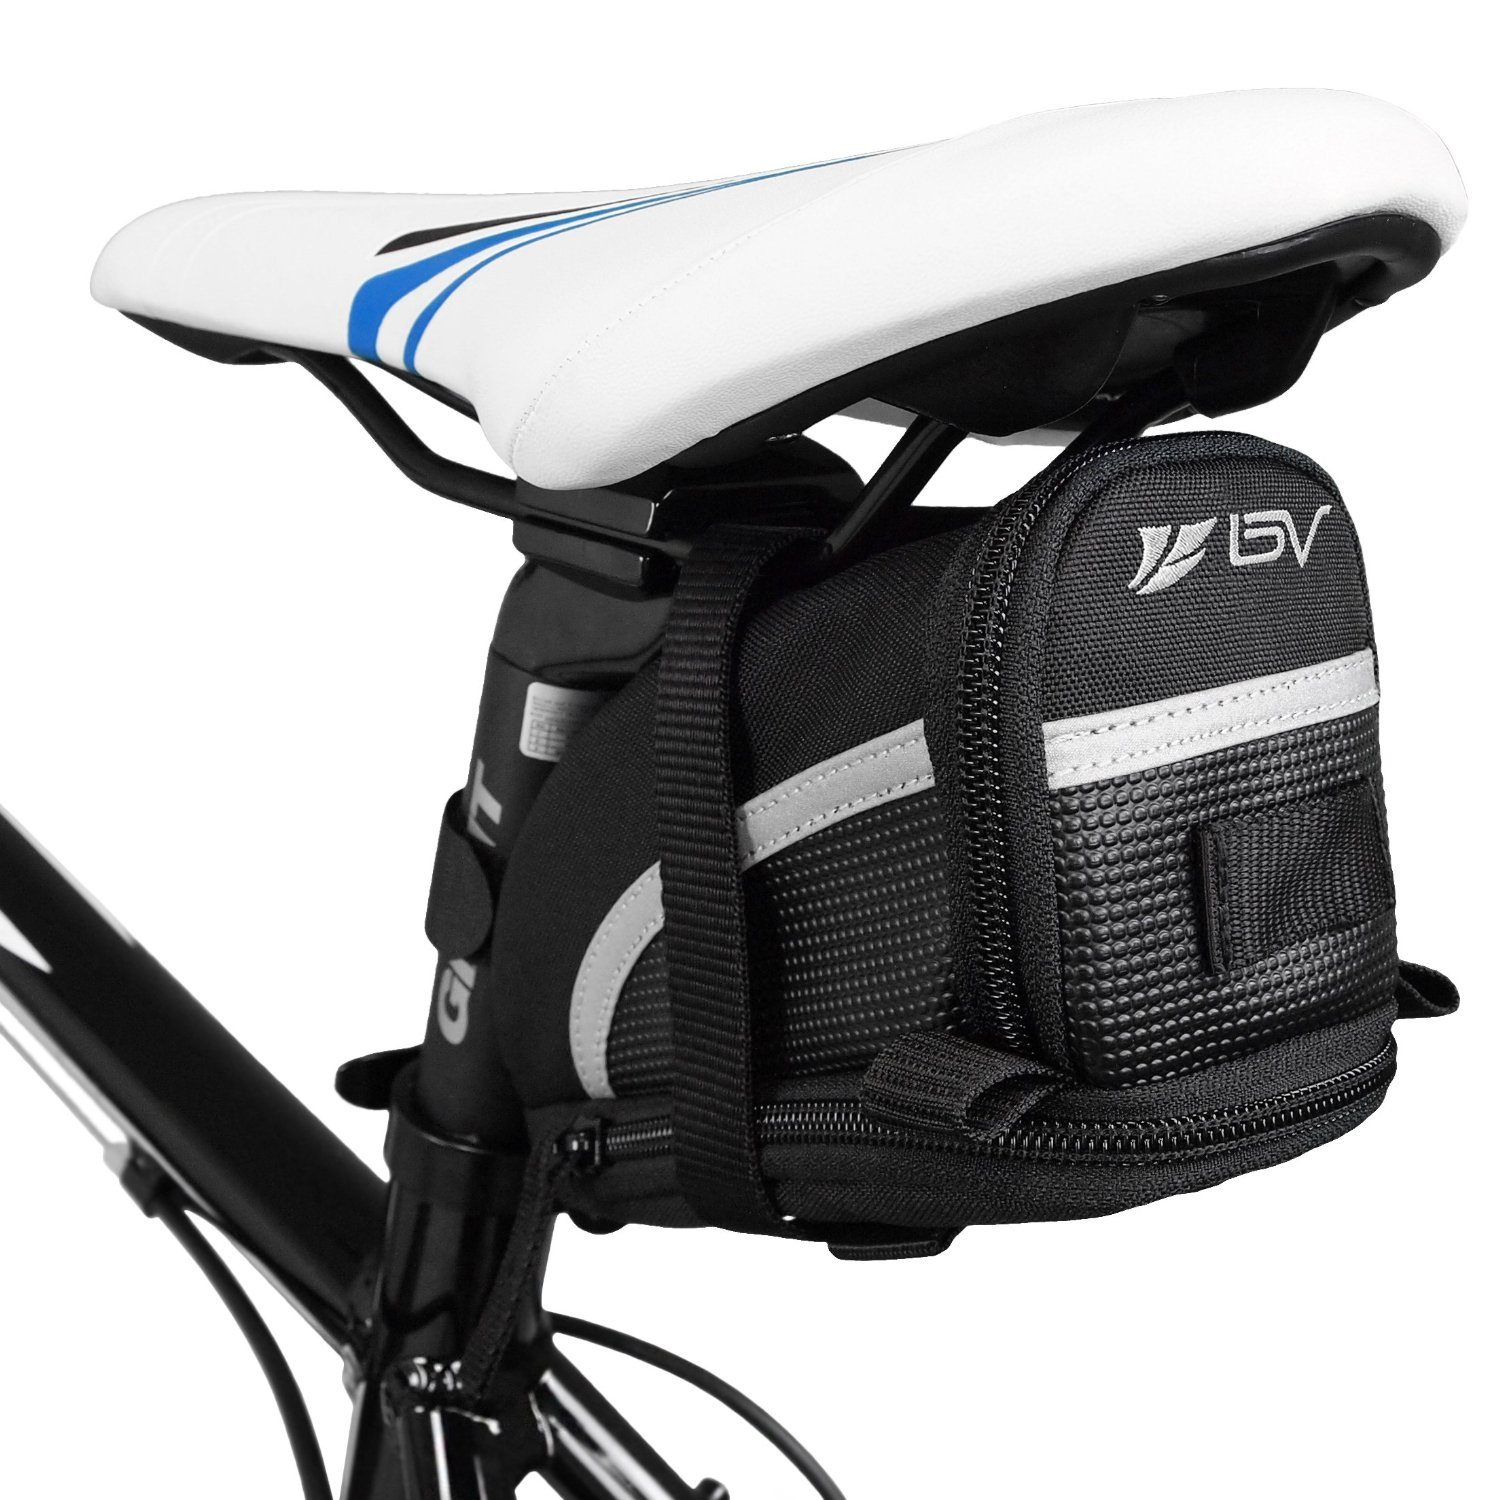 2. Bicycle Strap-Pm Seat Bag/Saddle Bag by BV